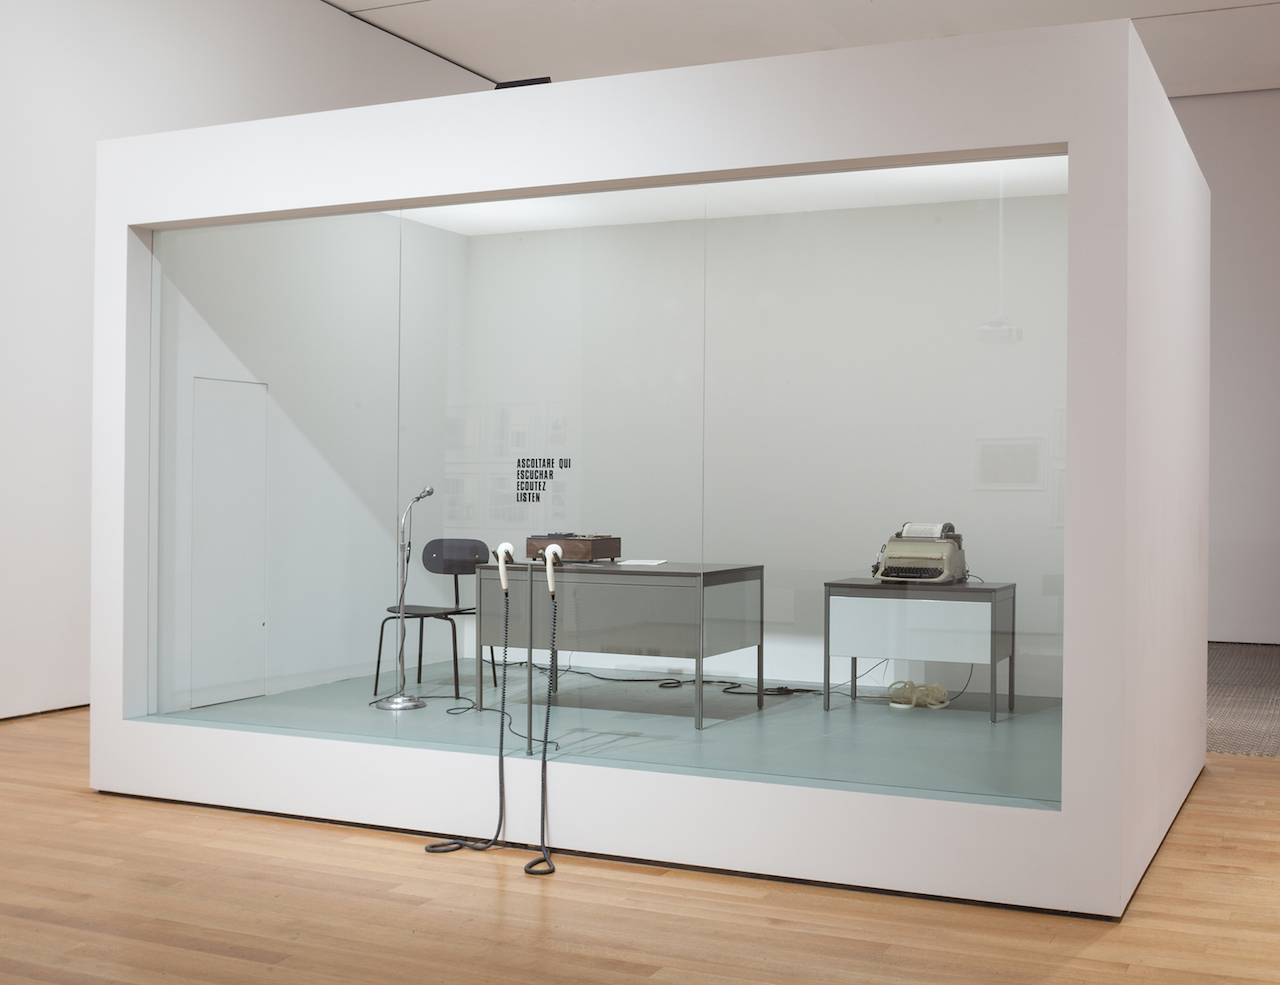 """David Lamelas, """"Office of Information about the Vietnam War at Three Levels: The Visual Image, Text and Audio"""" (1968/2015), office furniture, telex, tape recorder, microphone, telephone receivers, text, Plexiglas partition, and performance"""